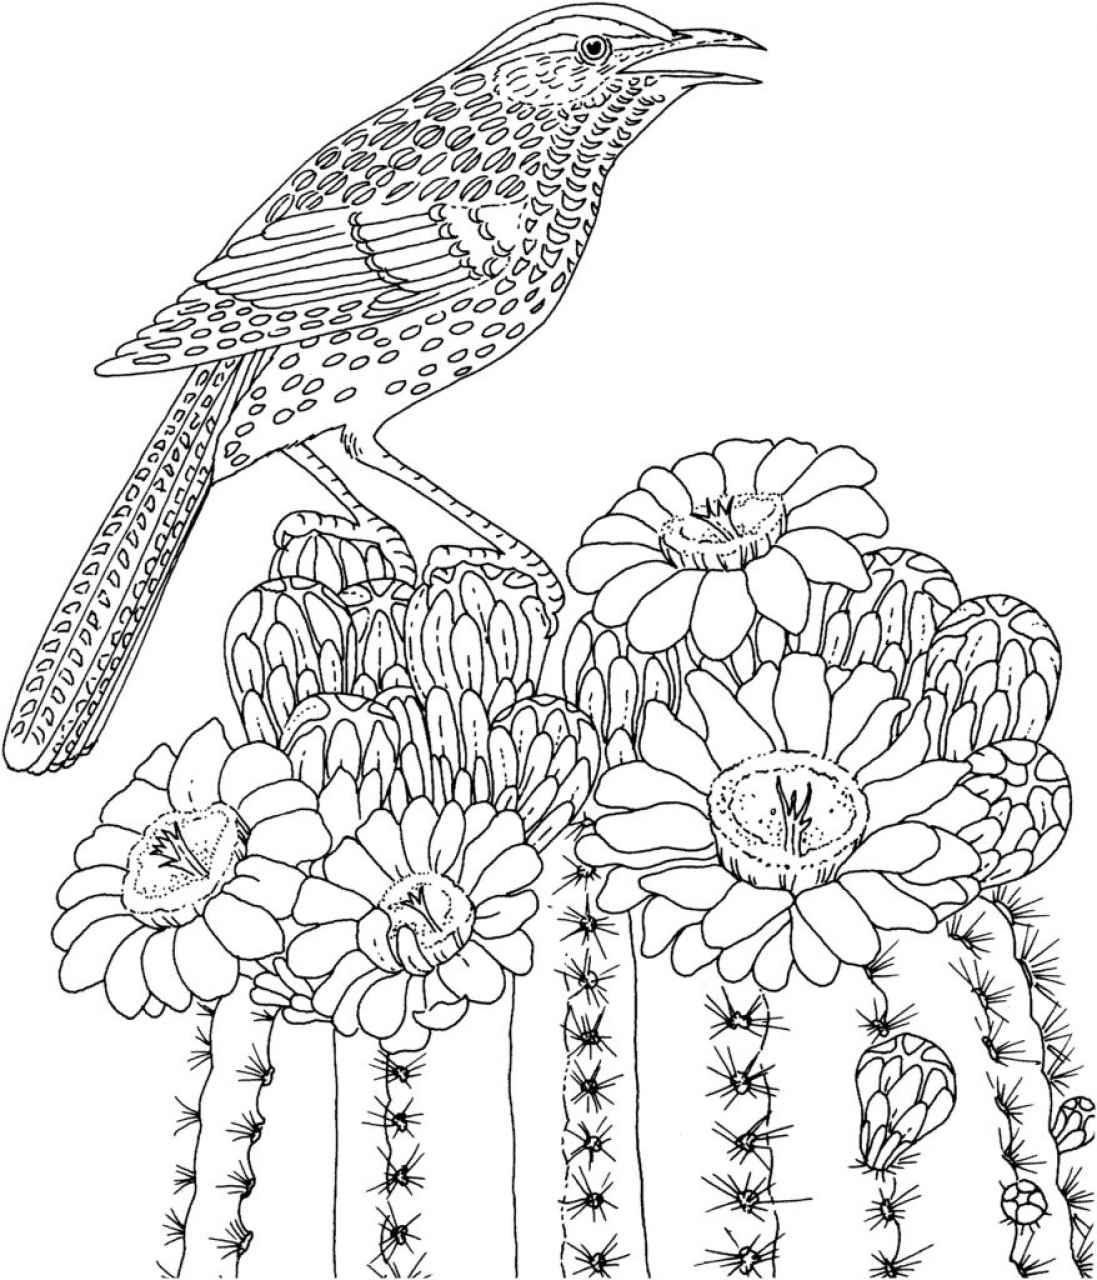 challenging coloring sheets printable difficult coloring pages coloring home sheets challenging coloring 1 2